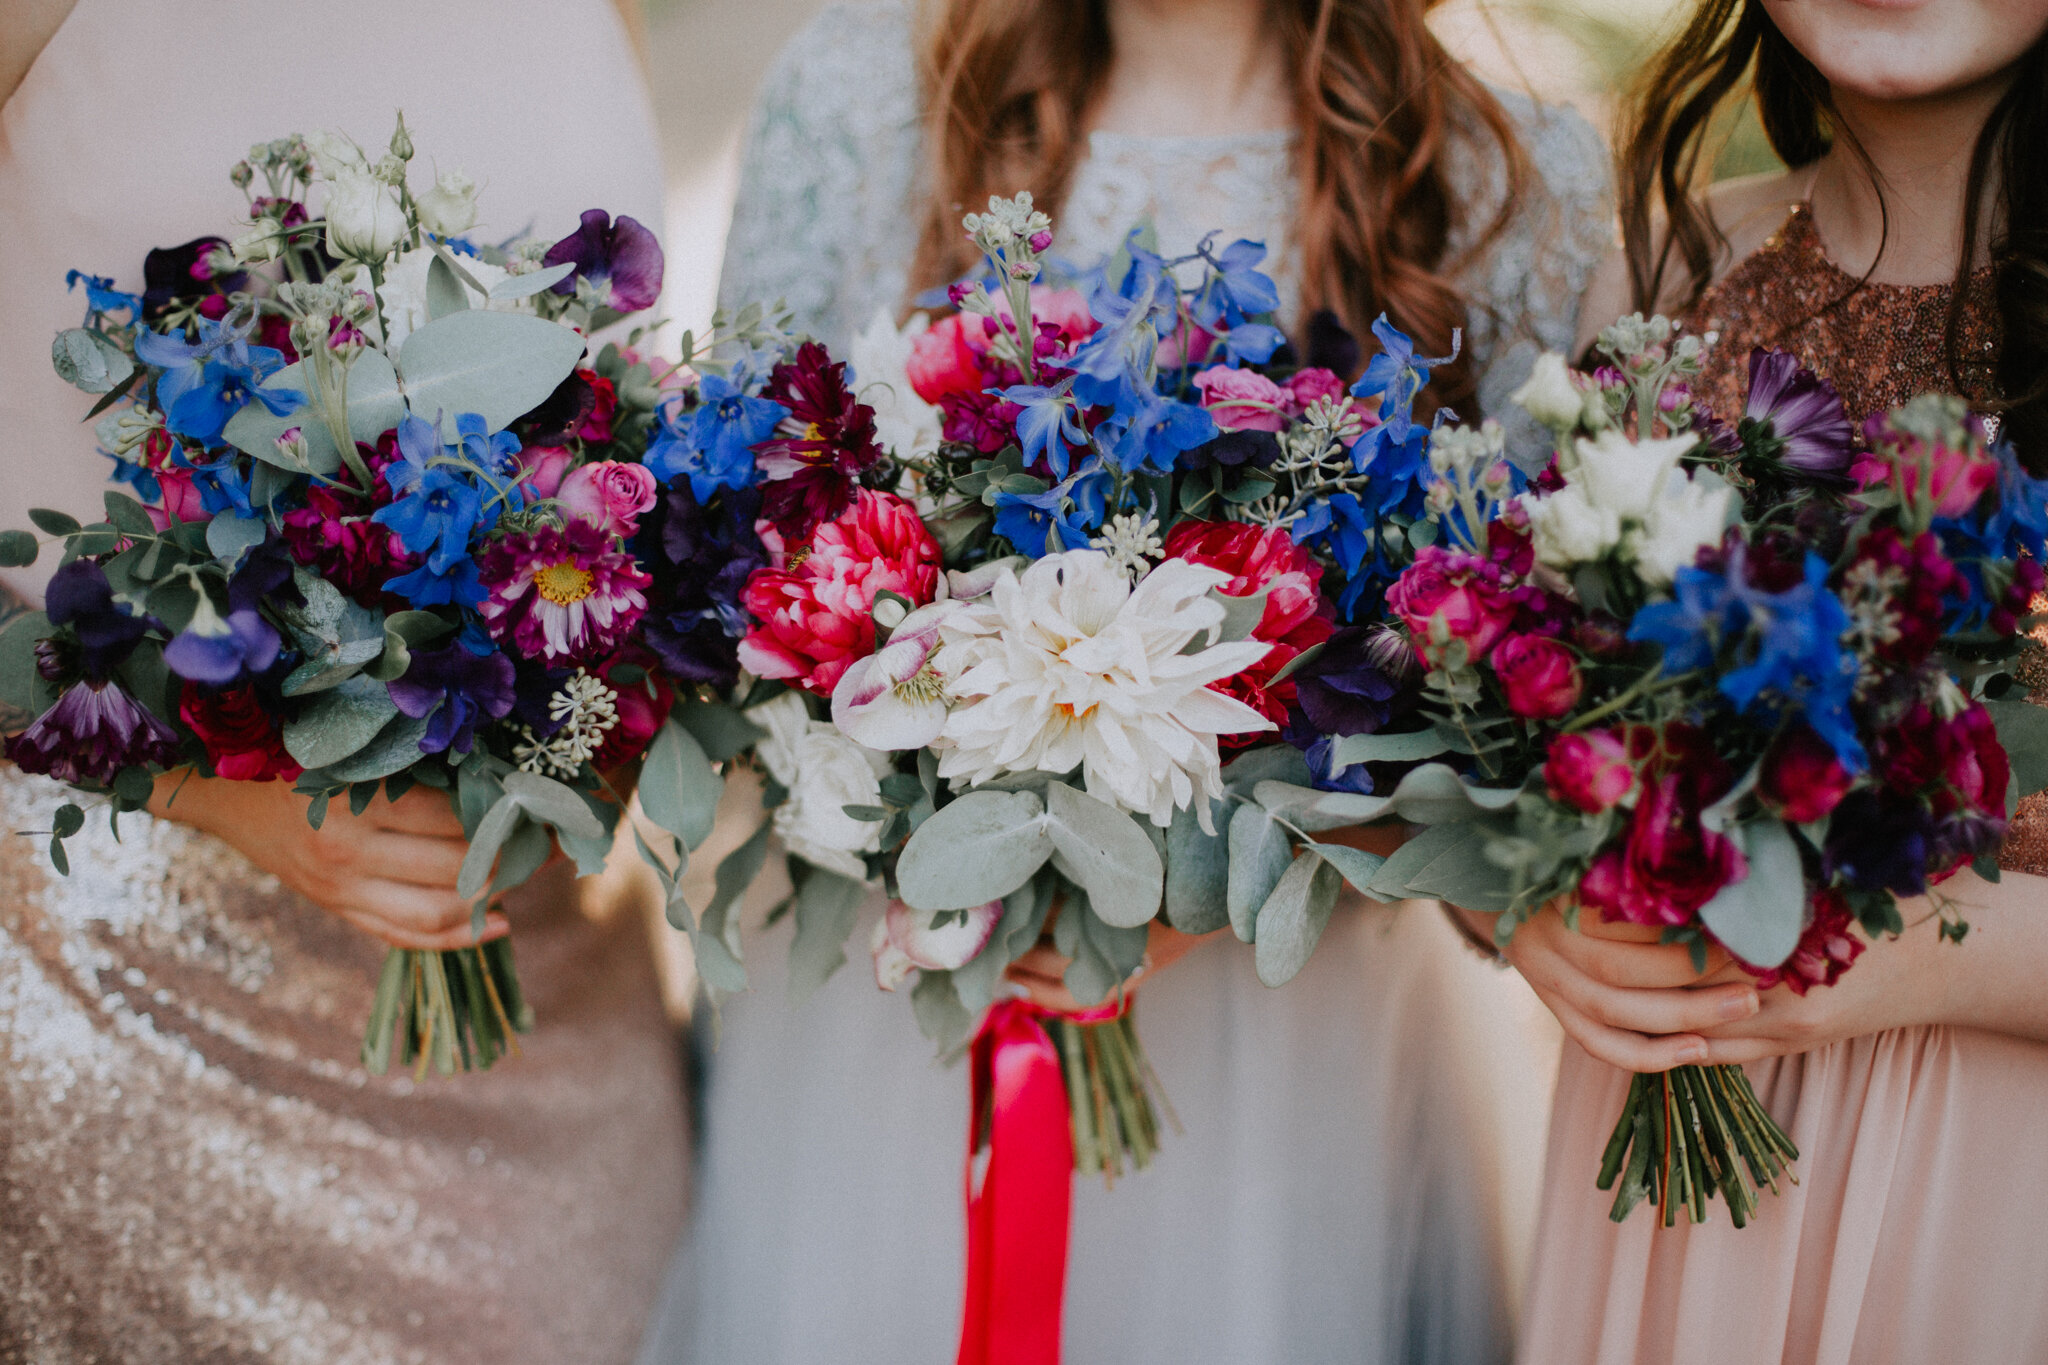 Close up photo of the wedding bouquets from the talented Little Botanica